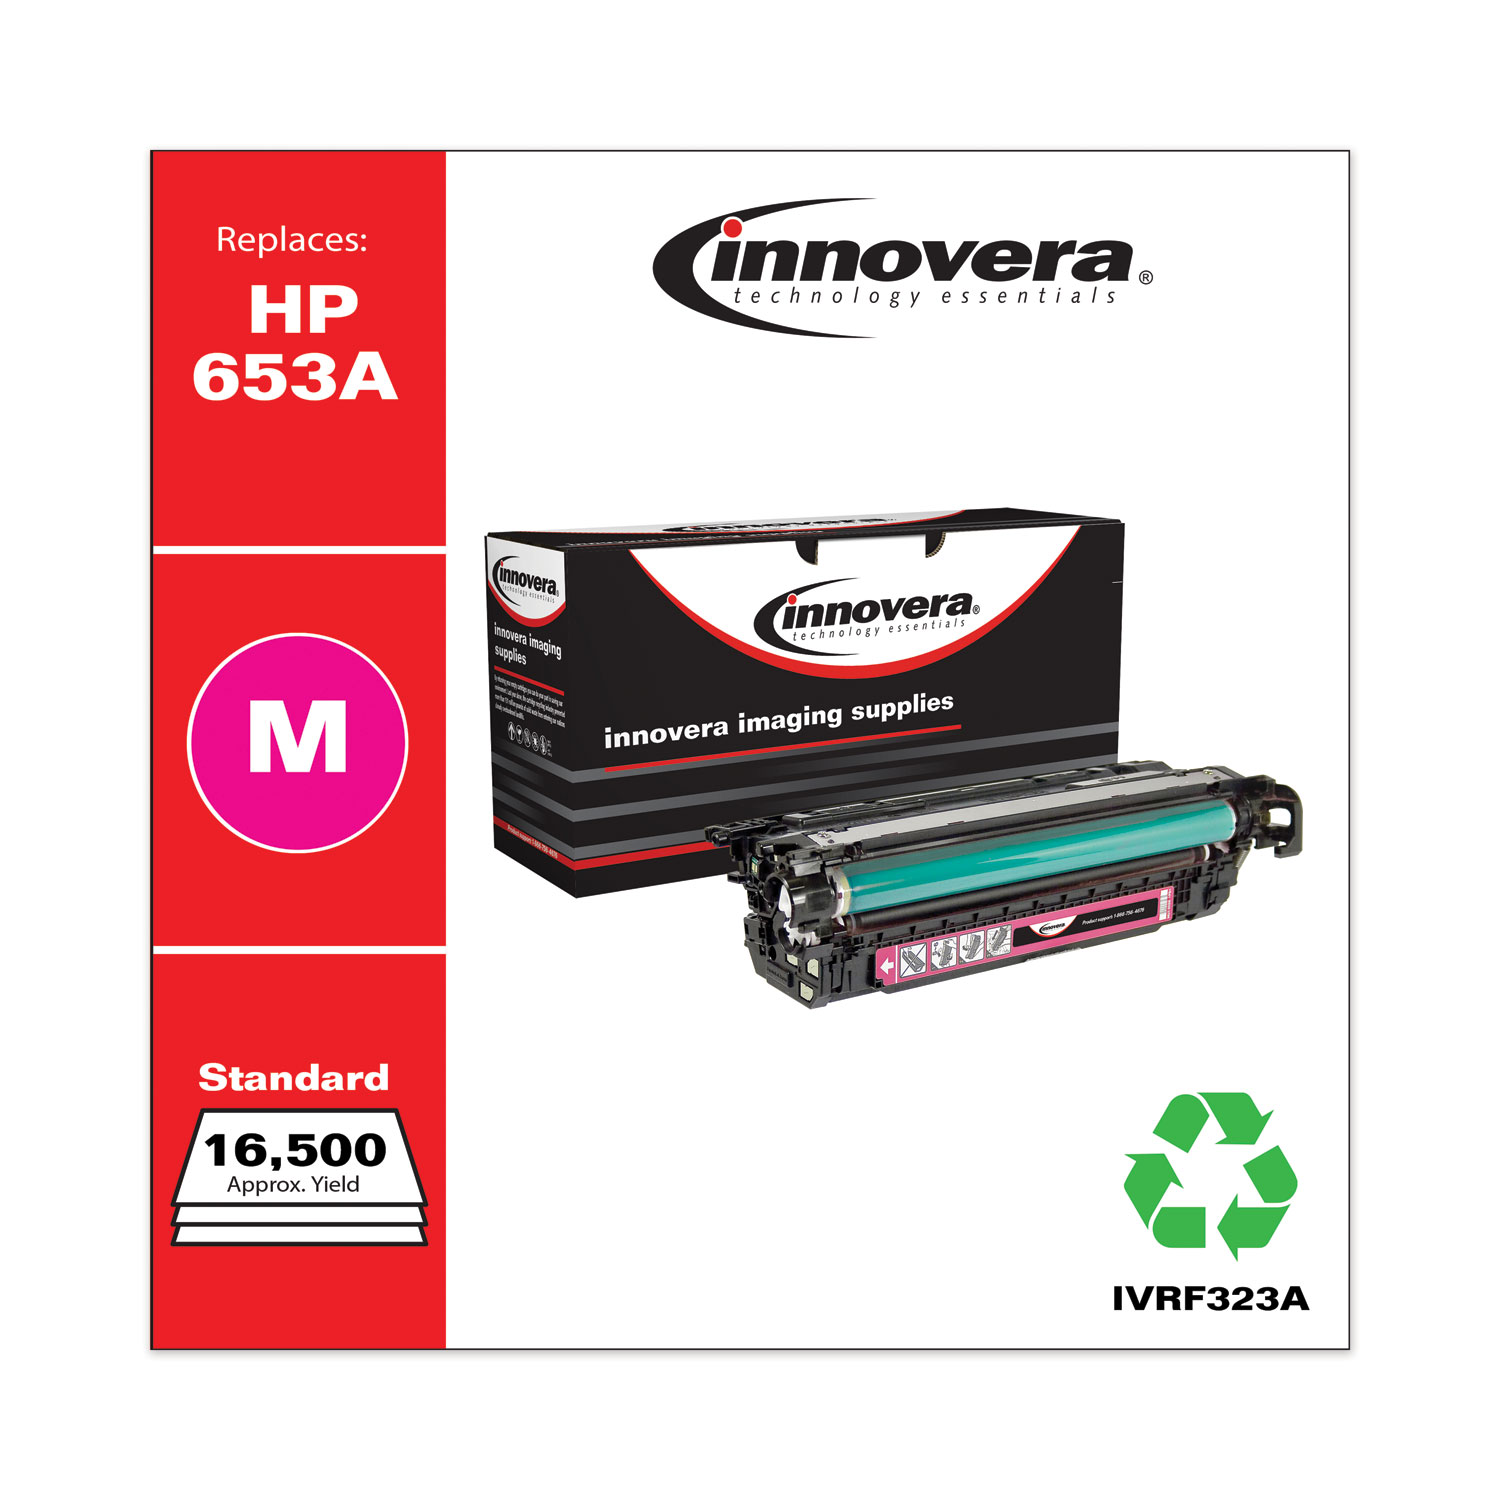 Remanufactured Magenta Toner, Replacement for HP 653A (CF323A), 16,500 Page-Yield IVRF323A